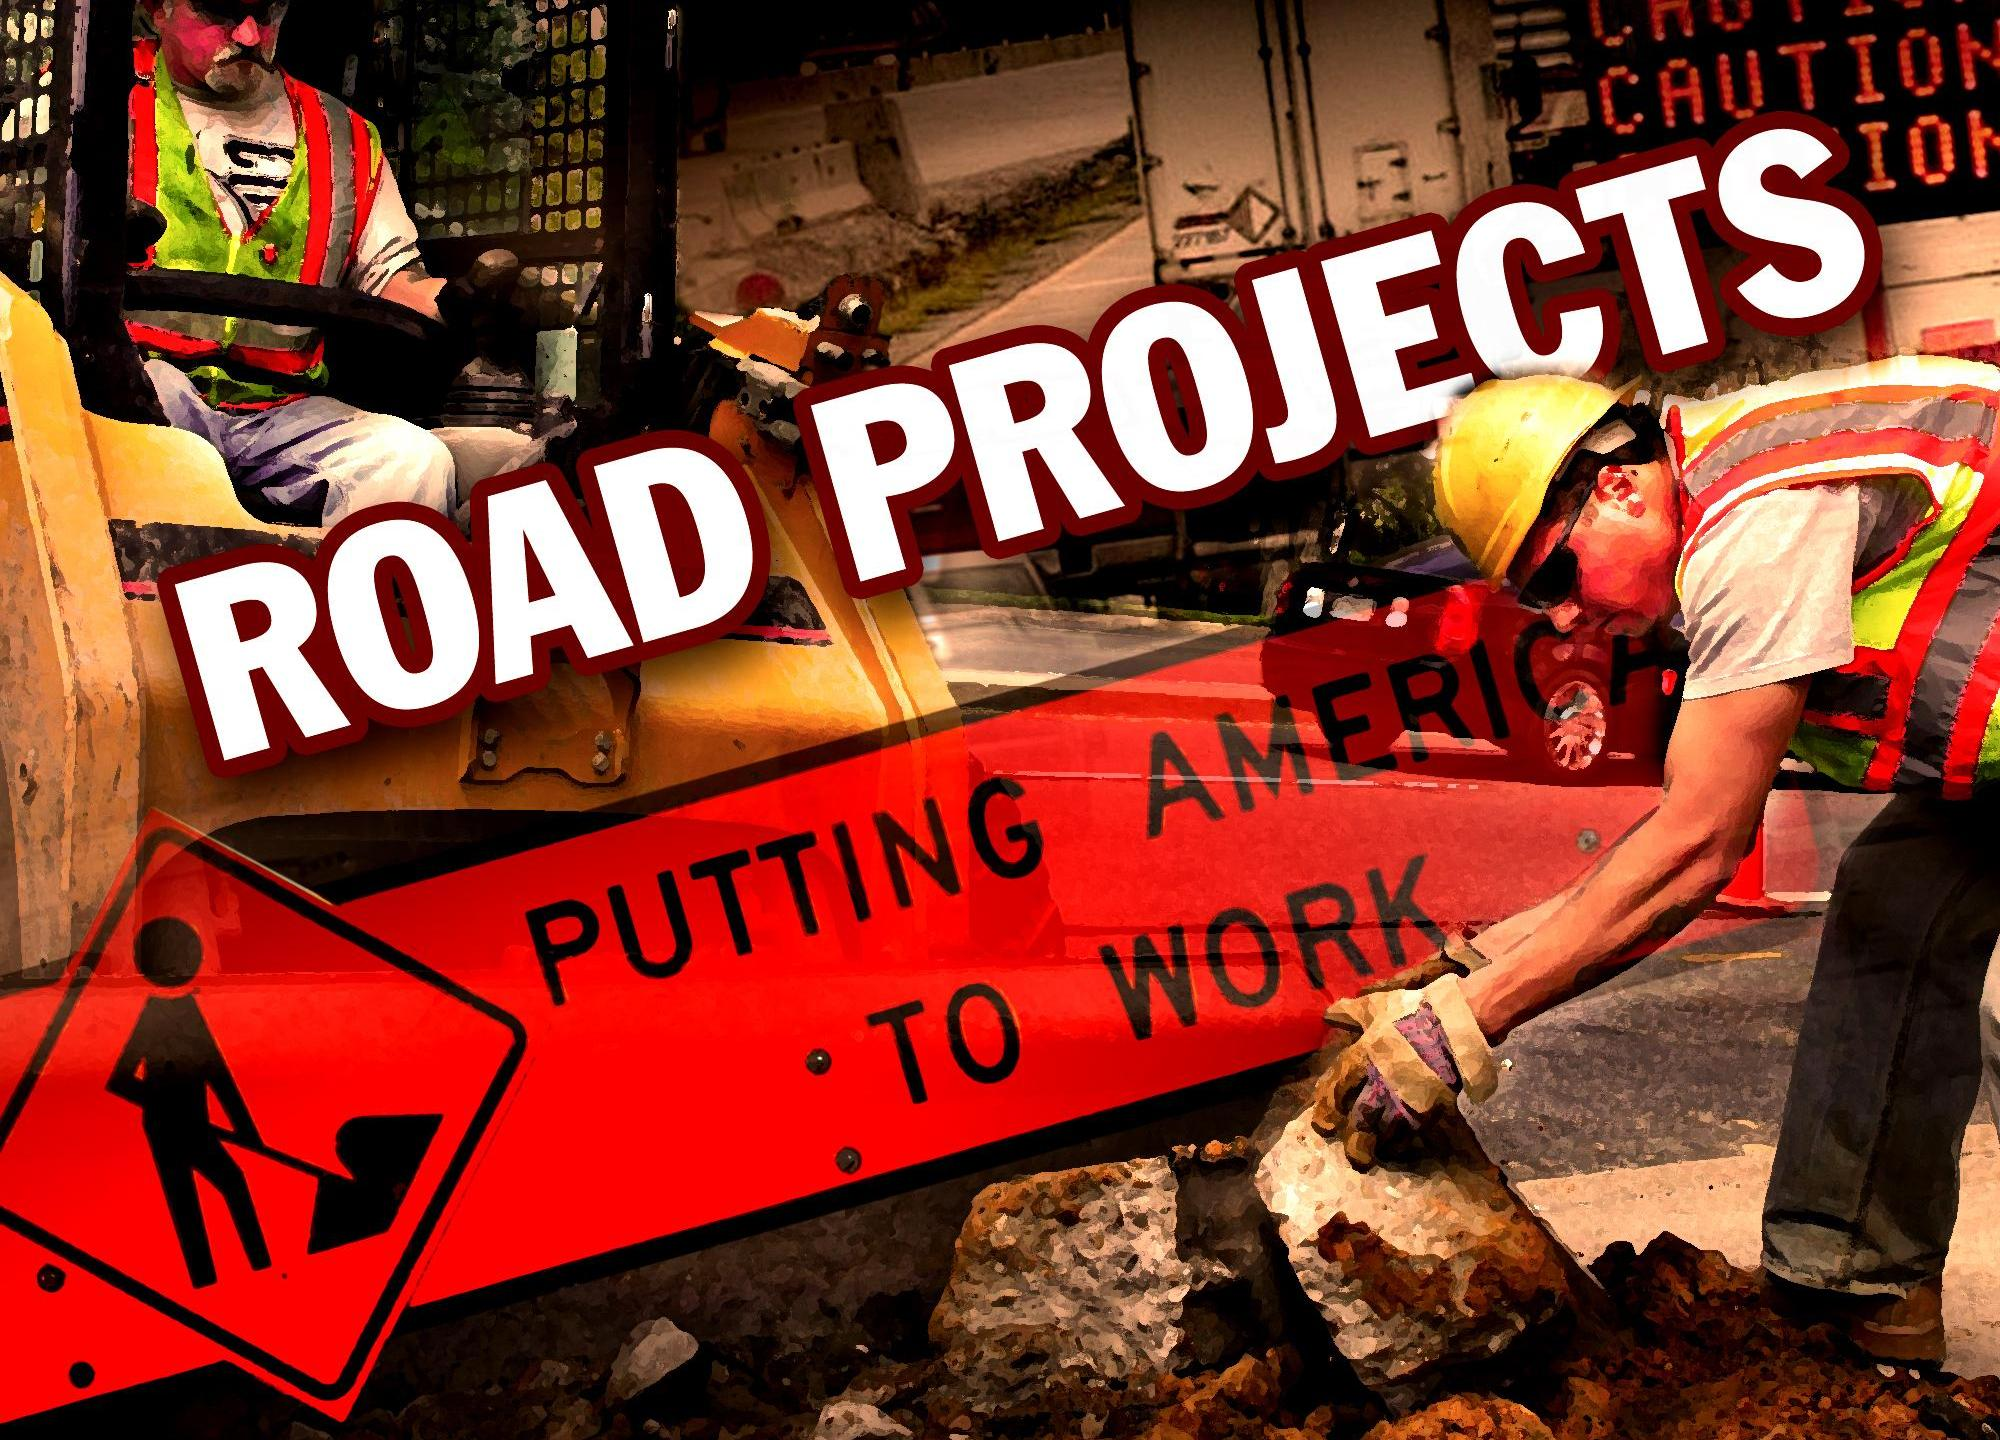 Road projects_1517259250163.jpg